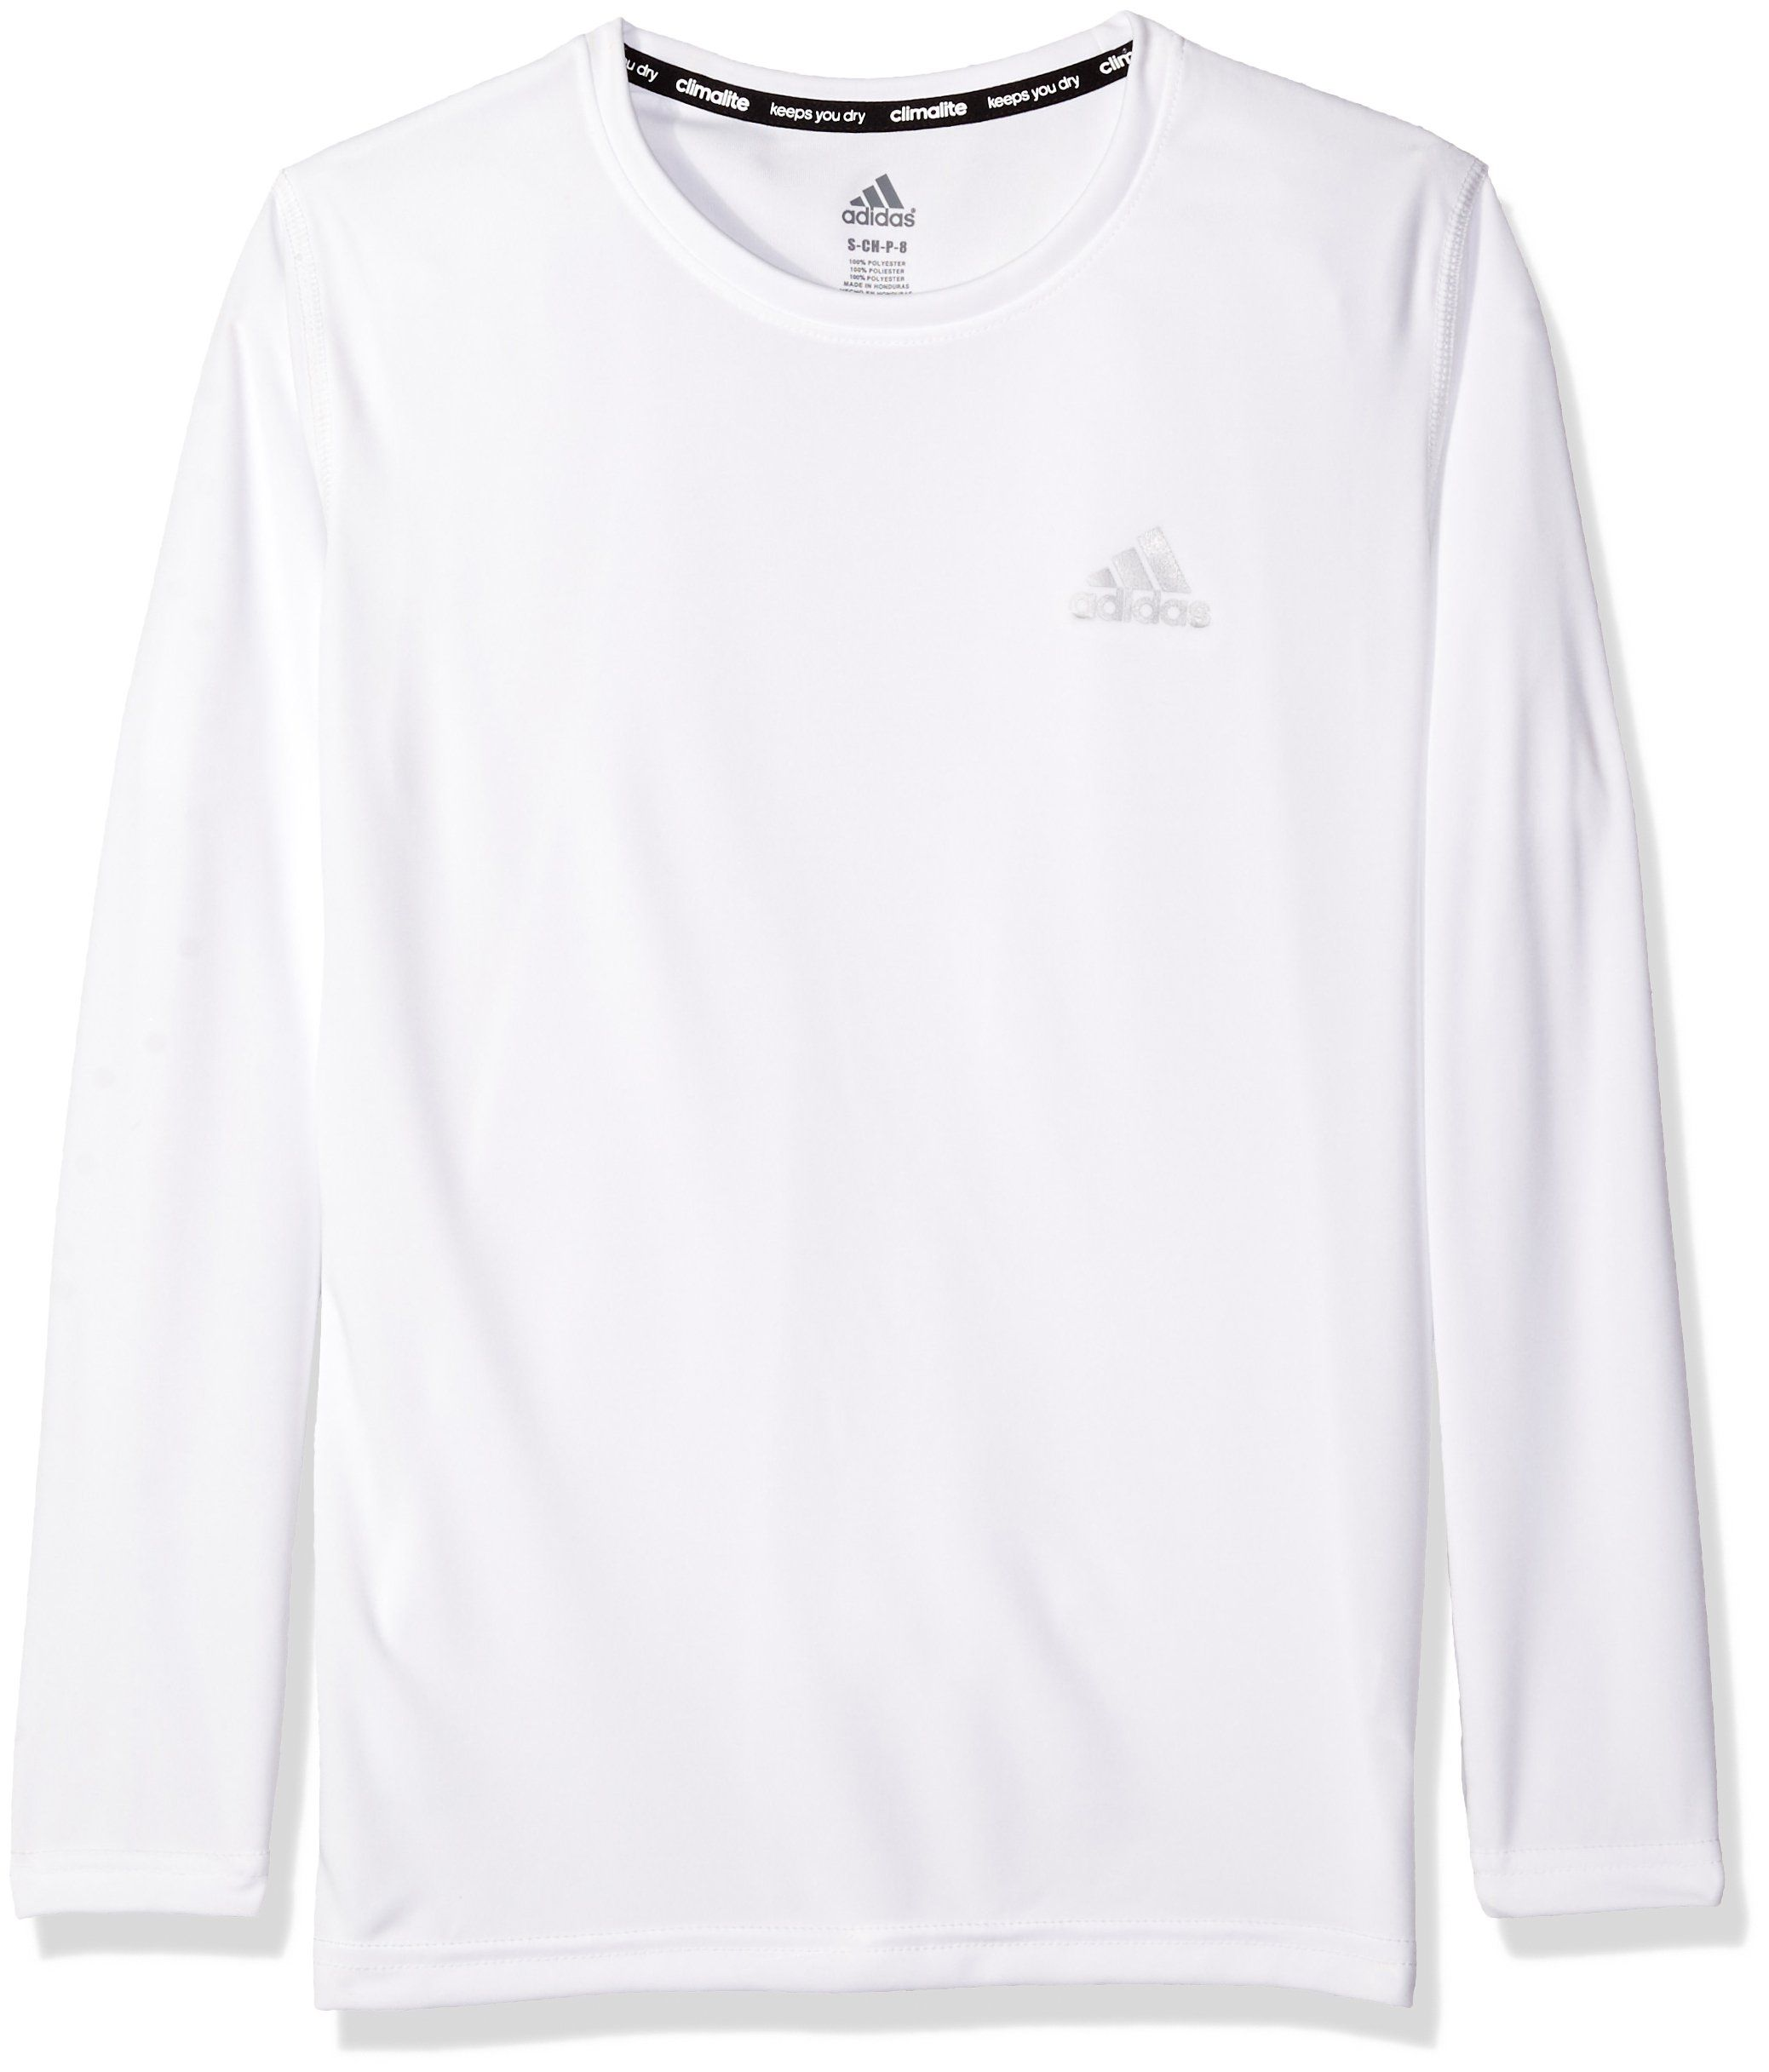 White X Boys' Sleeve Tee Clima Essential Big Adidas Long Large18 Z1qvqSx